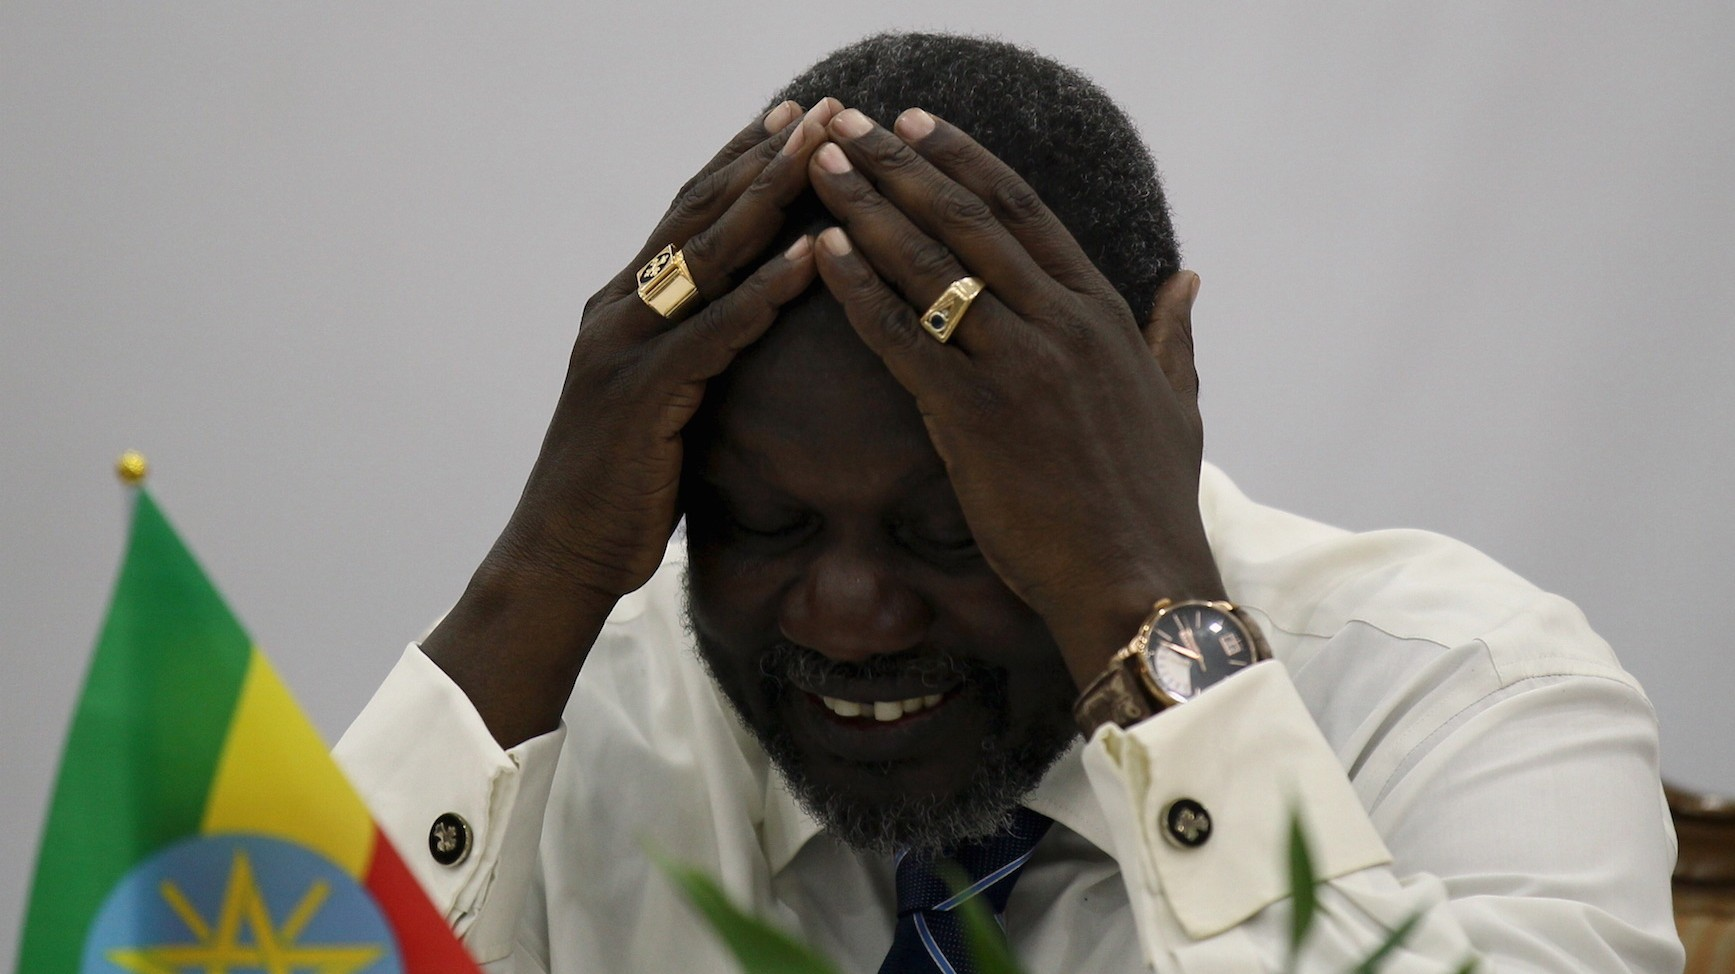 South Sudan Rebel Leader Riek Machar Stuck in Ethiopia After Week of Delays